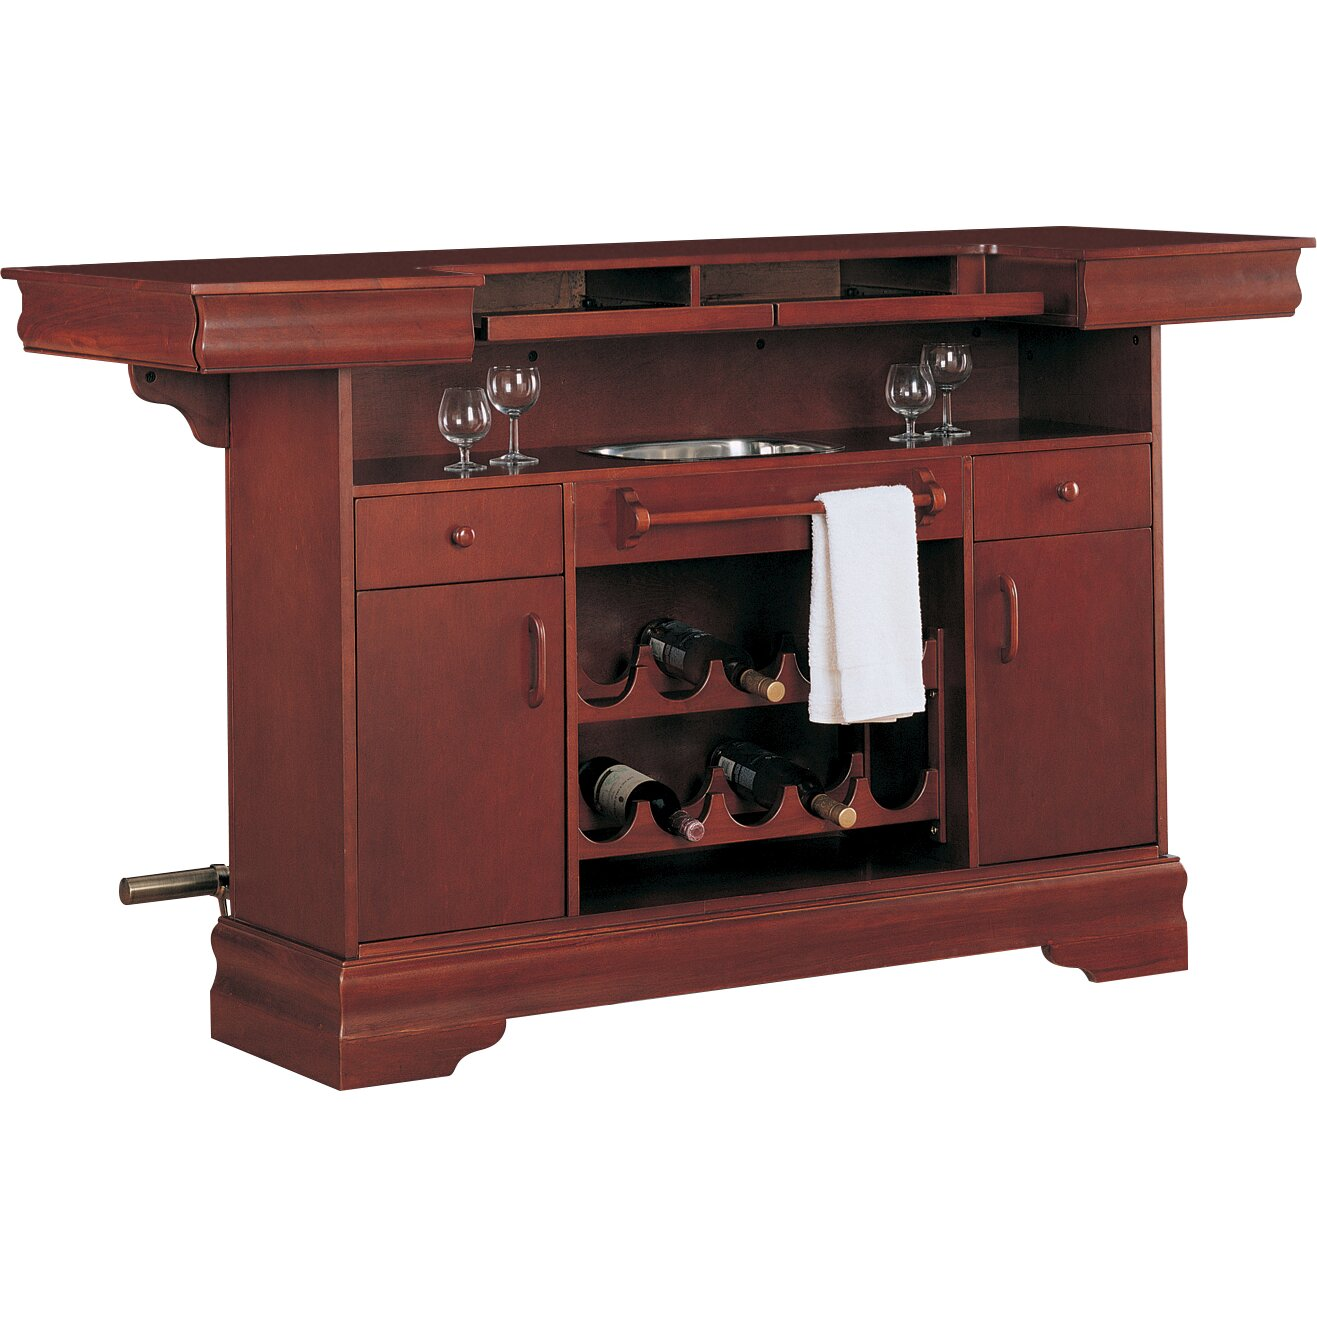 Darby home co shumaker home bar reviews wayfair Home pub bar furniture